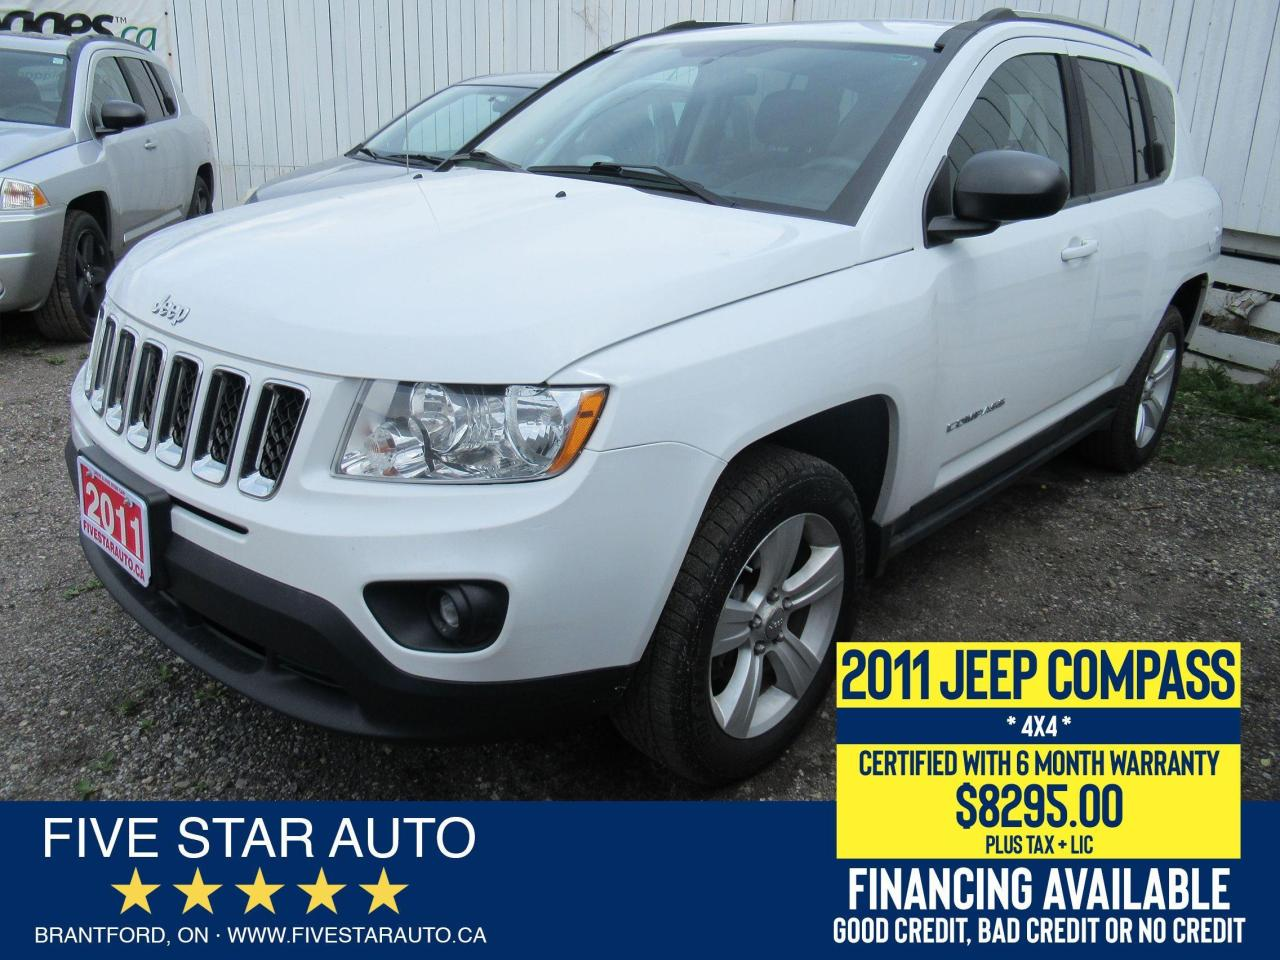 2011 Jeep Compass North 4X4 - Certified w/ 6 Month Warranty